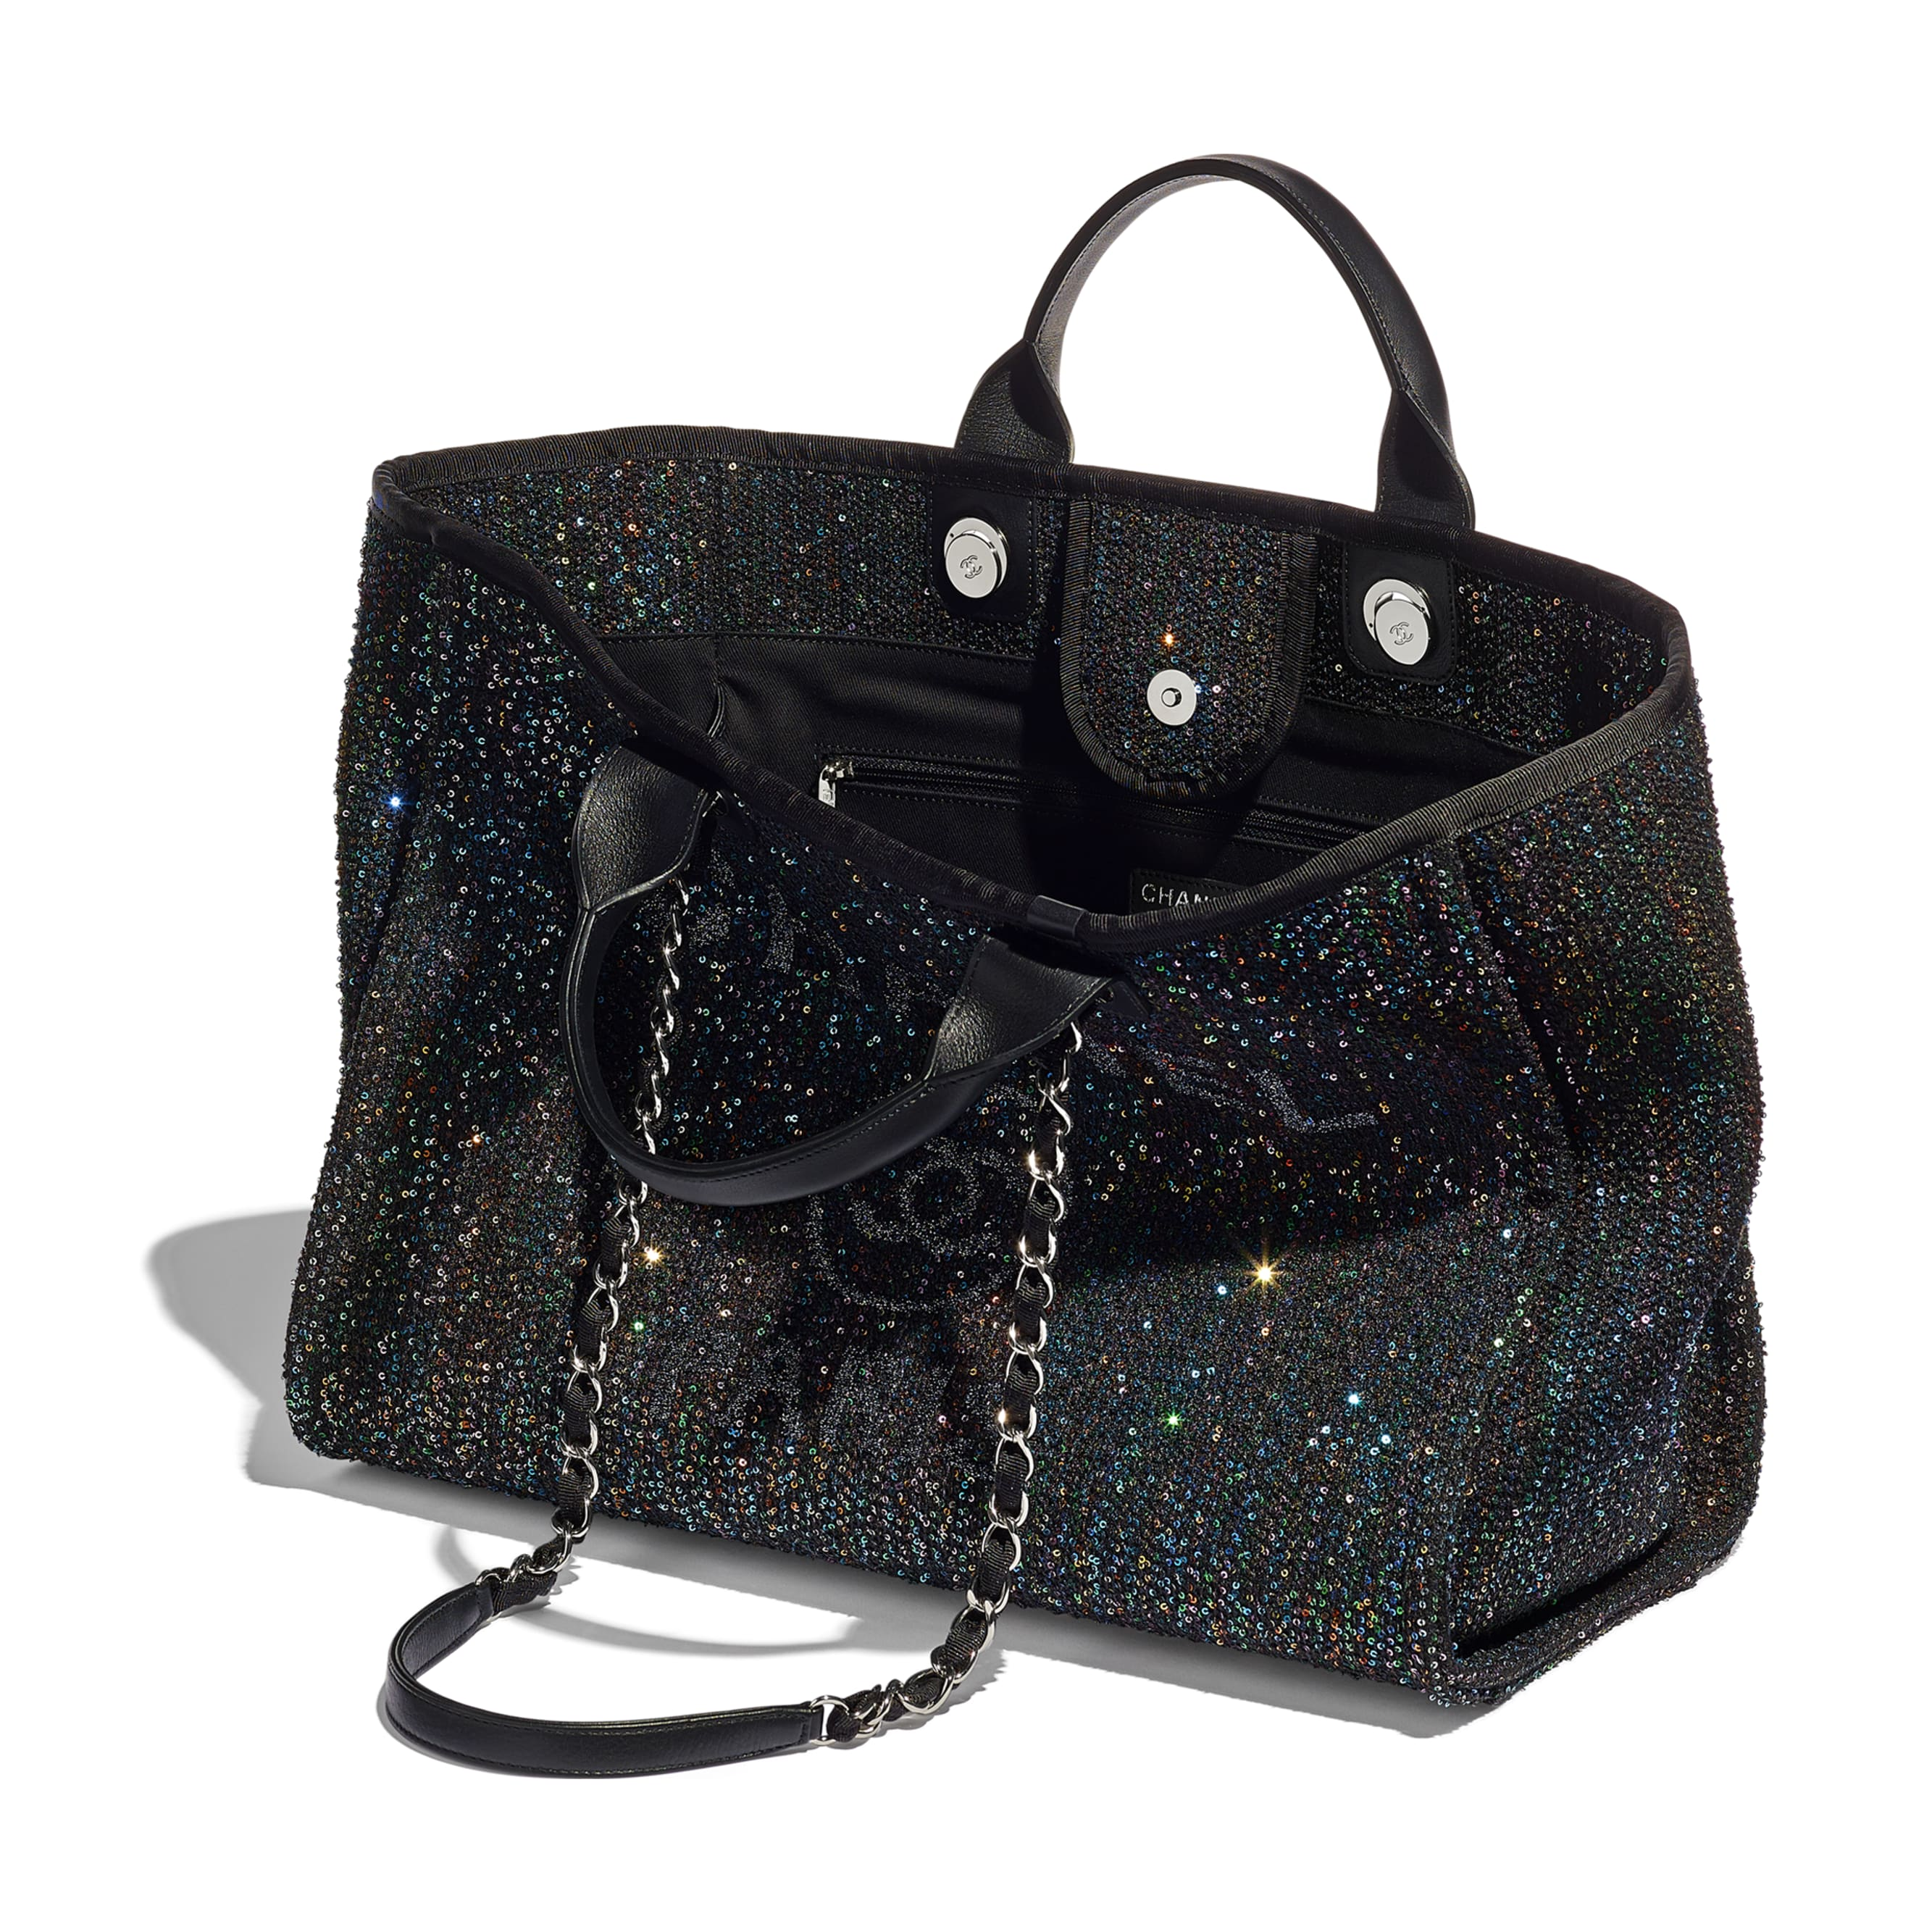 Large Tote - Black - Viscose, Calfskin, Sequins & Silver-Tone Metal - CHANEL - Other view - see standard sized version